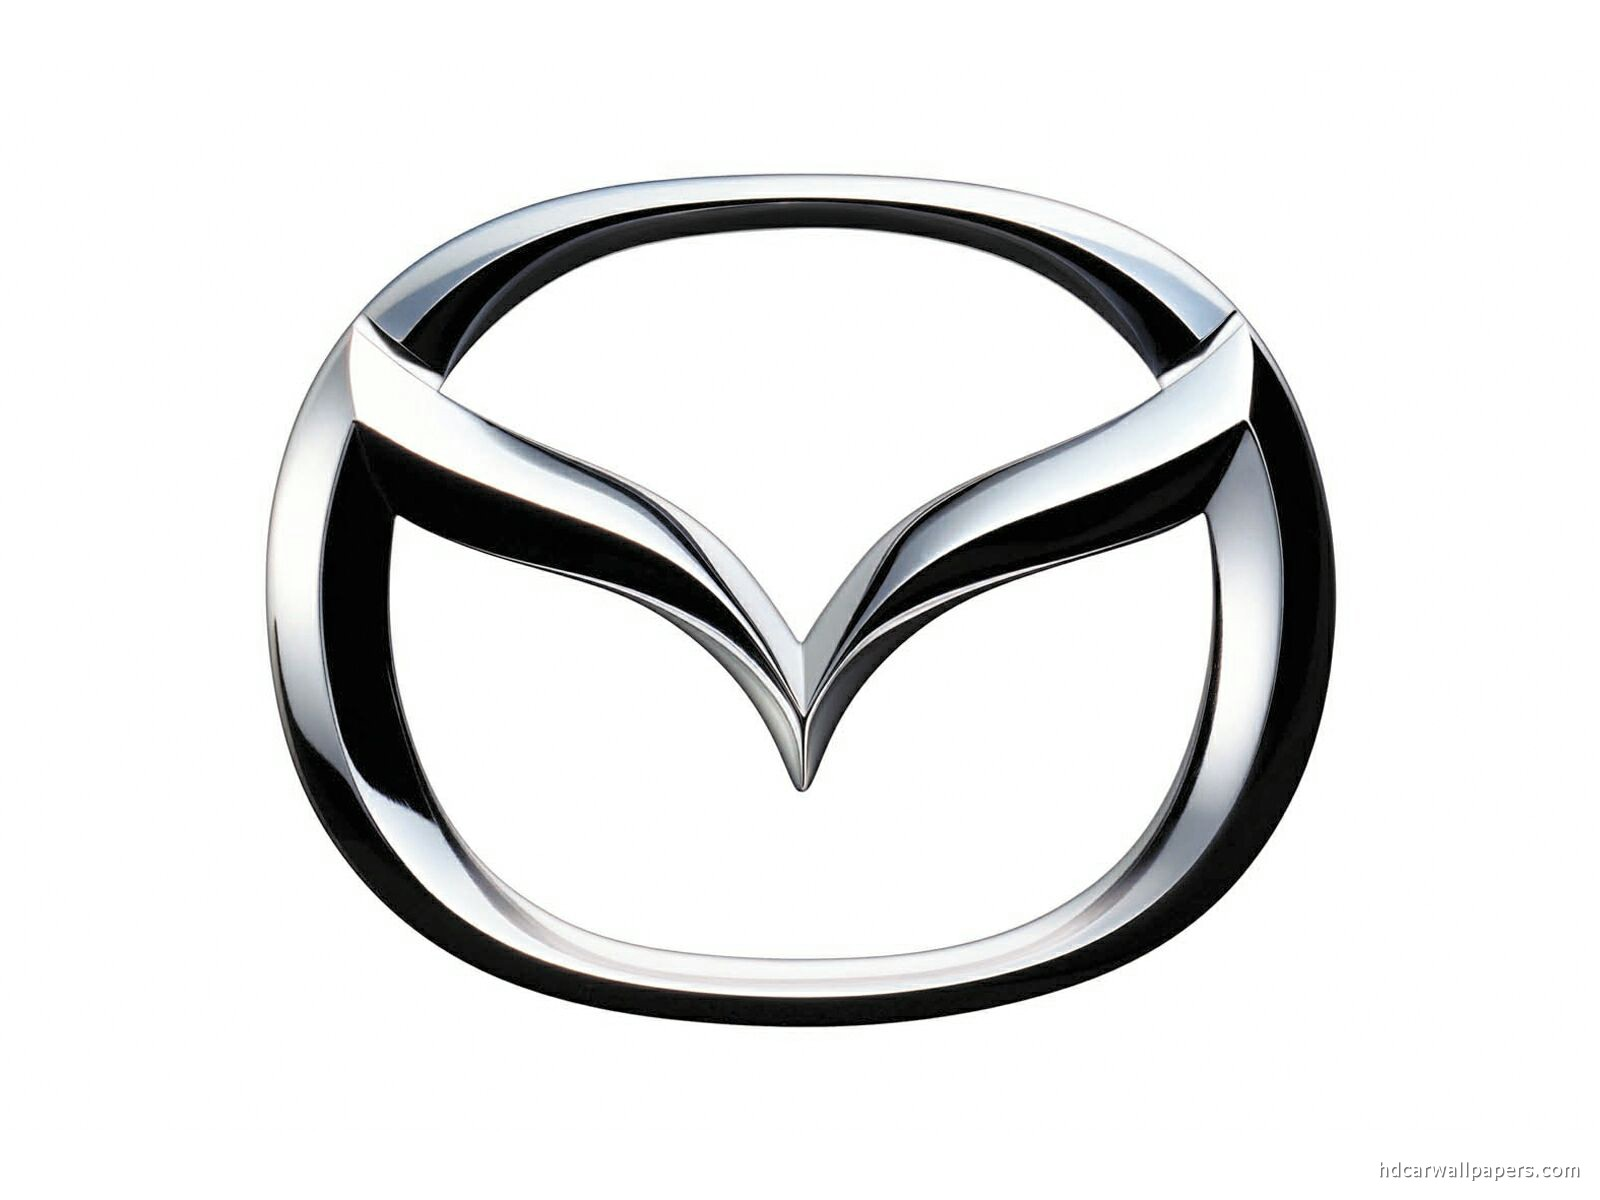 Mazda Car Logo Wallpaper | HD Car Wallpapers